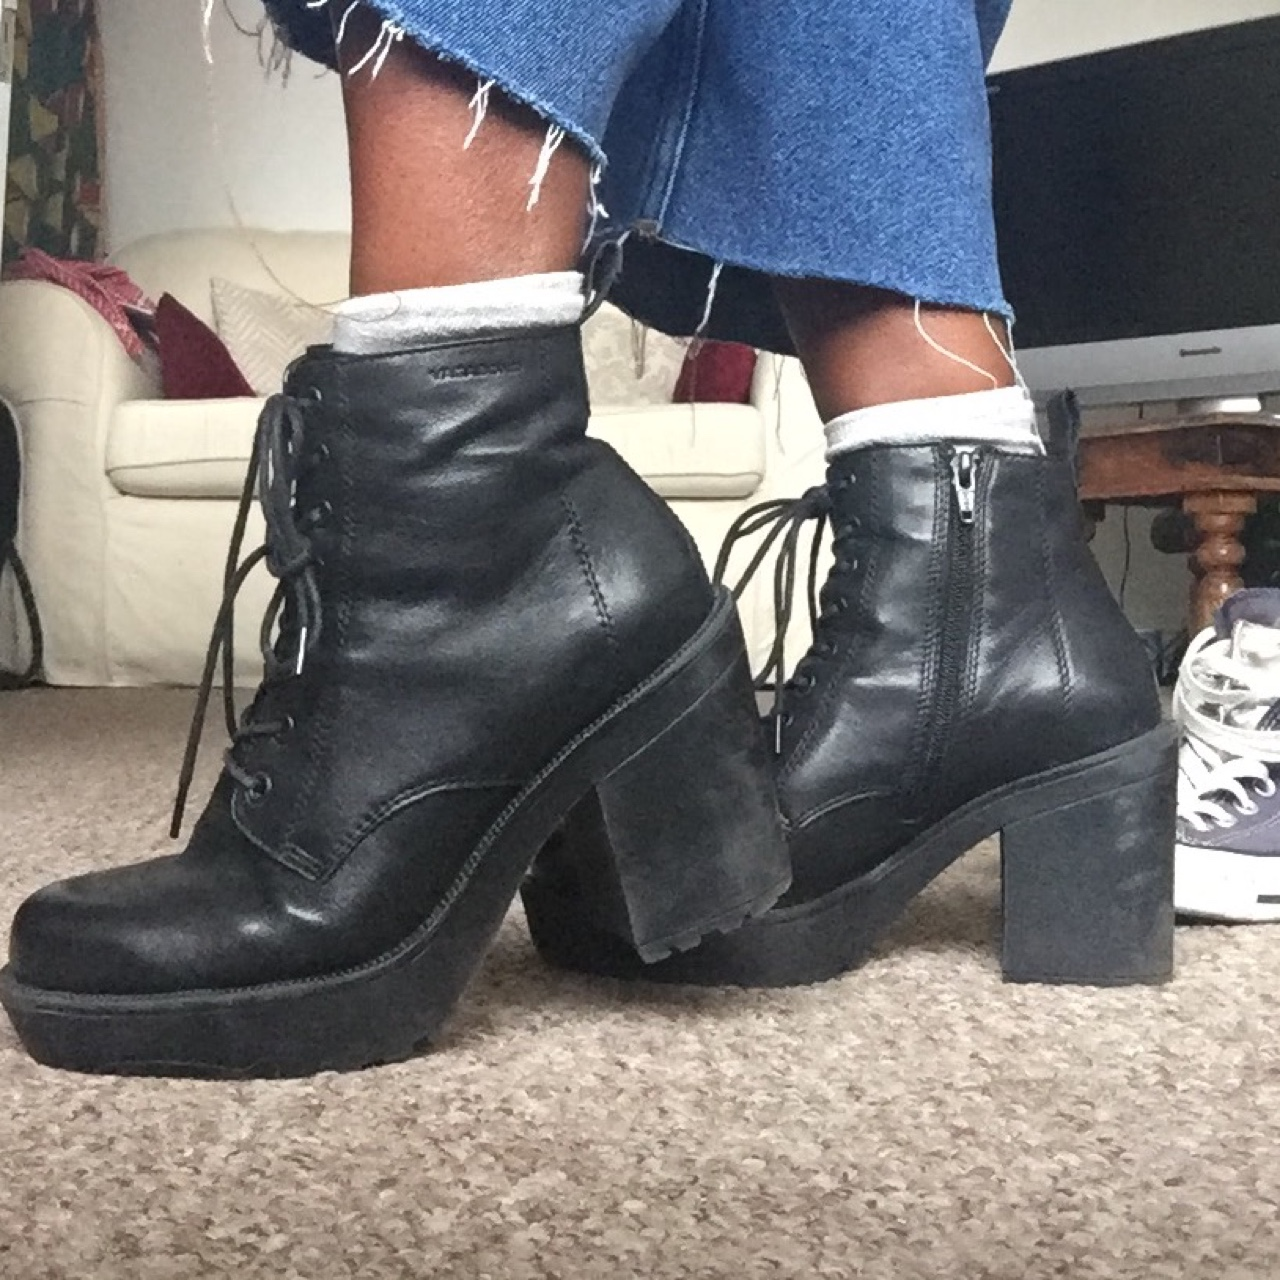 bcb9f8dcf94 Vagabond Libby Urban Outditters chunky lace up ankle... - Depop